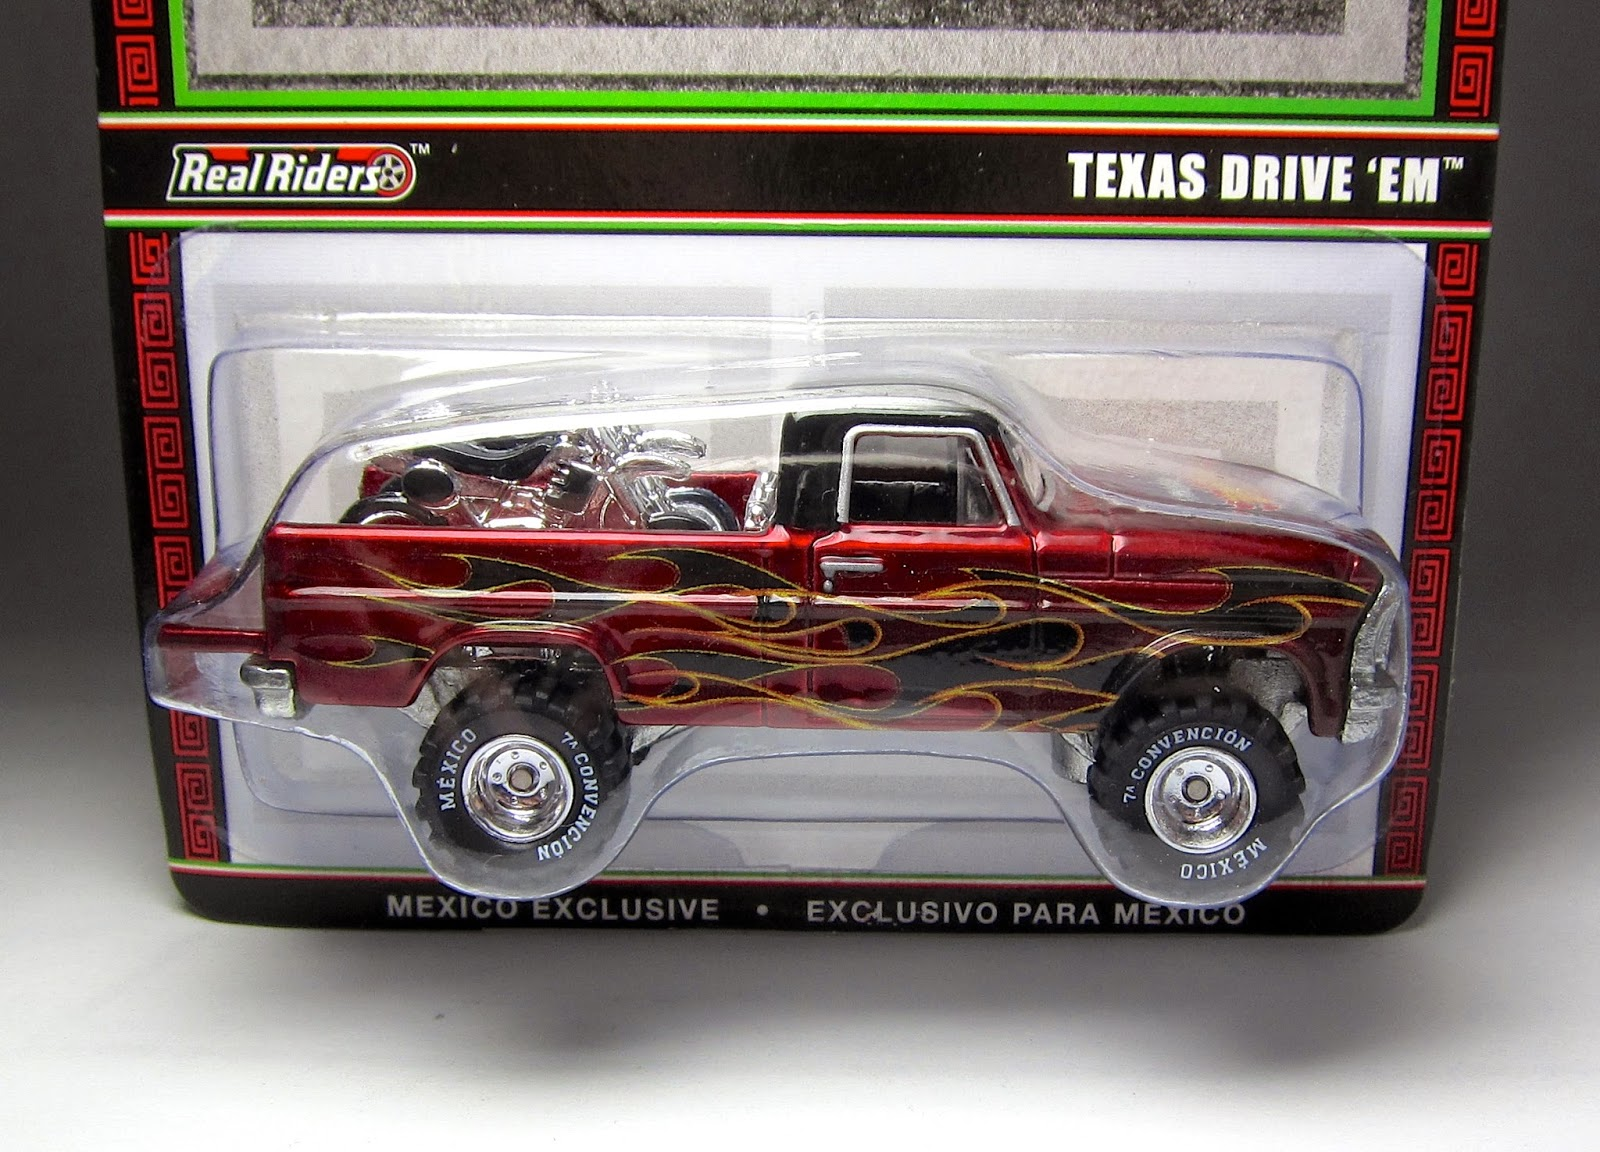 First Look: Hot Wheels Texas Drive 'Em Mexico Convention